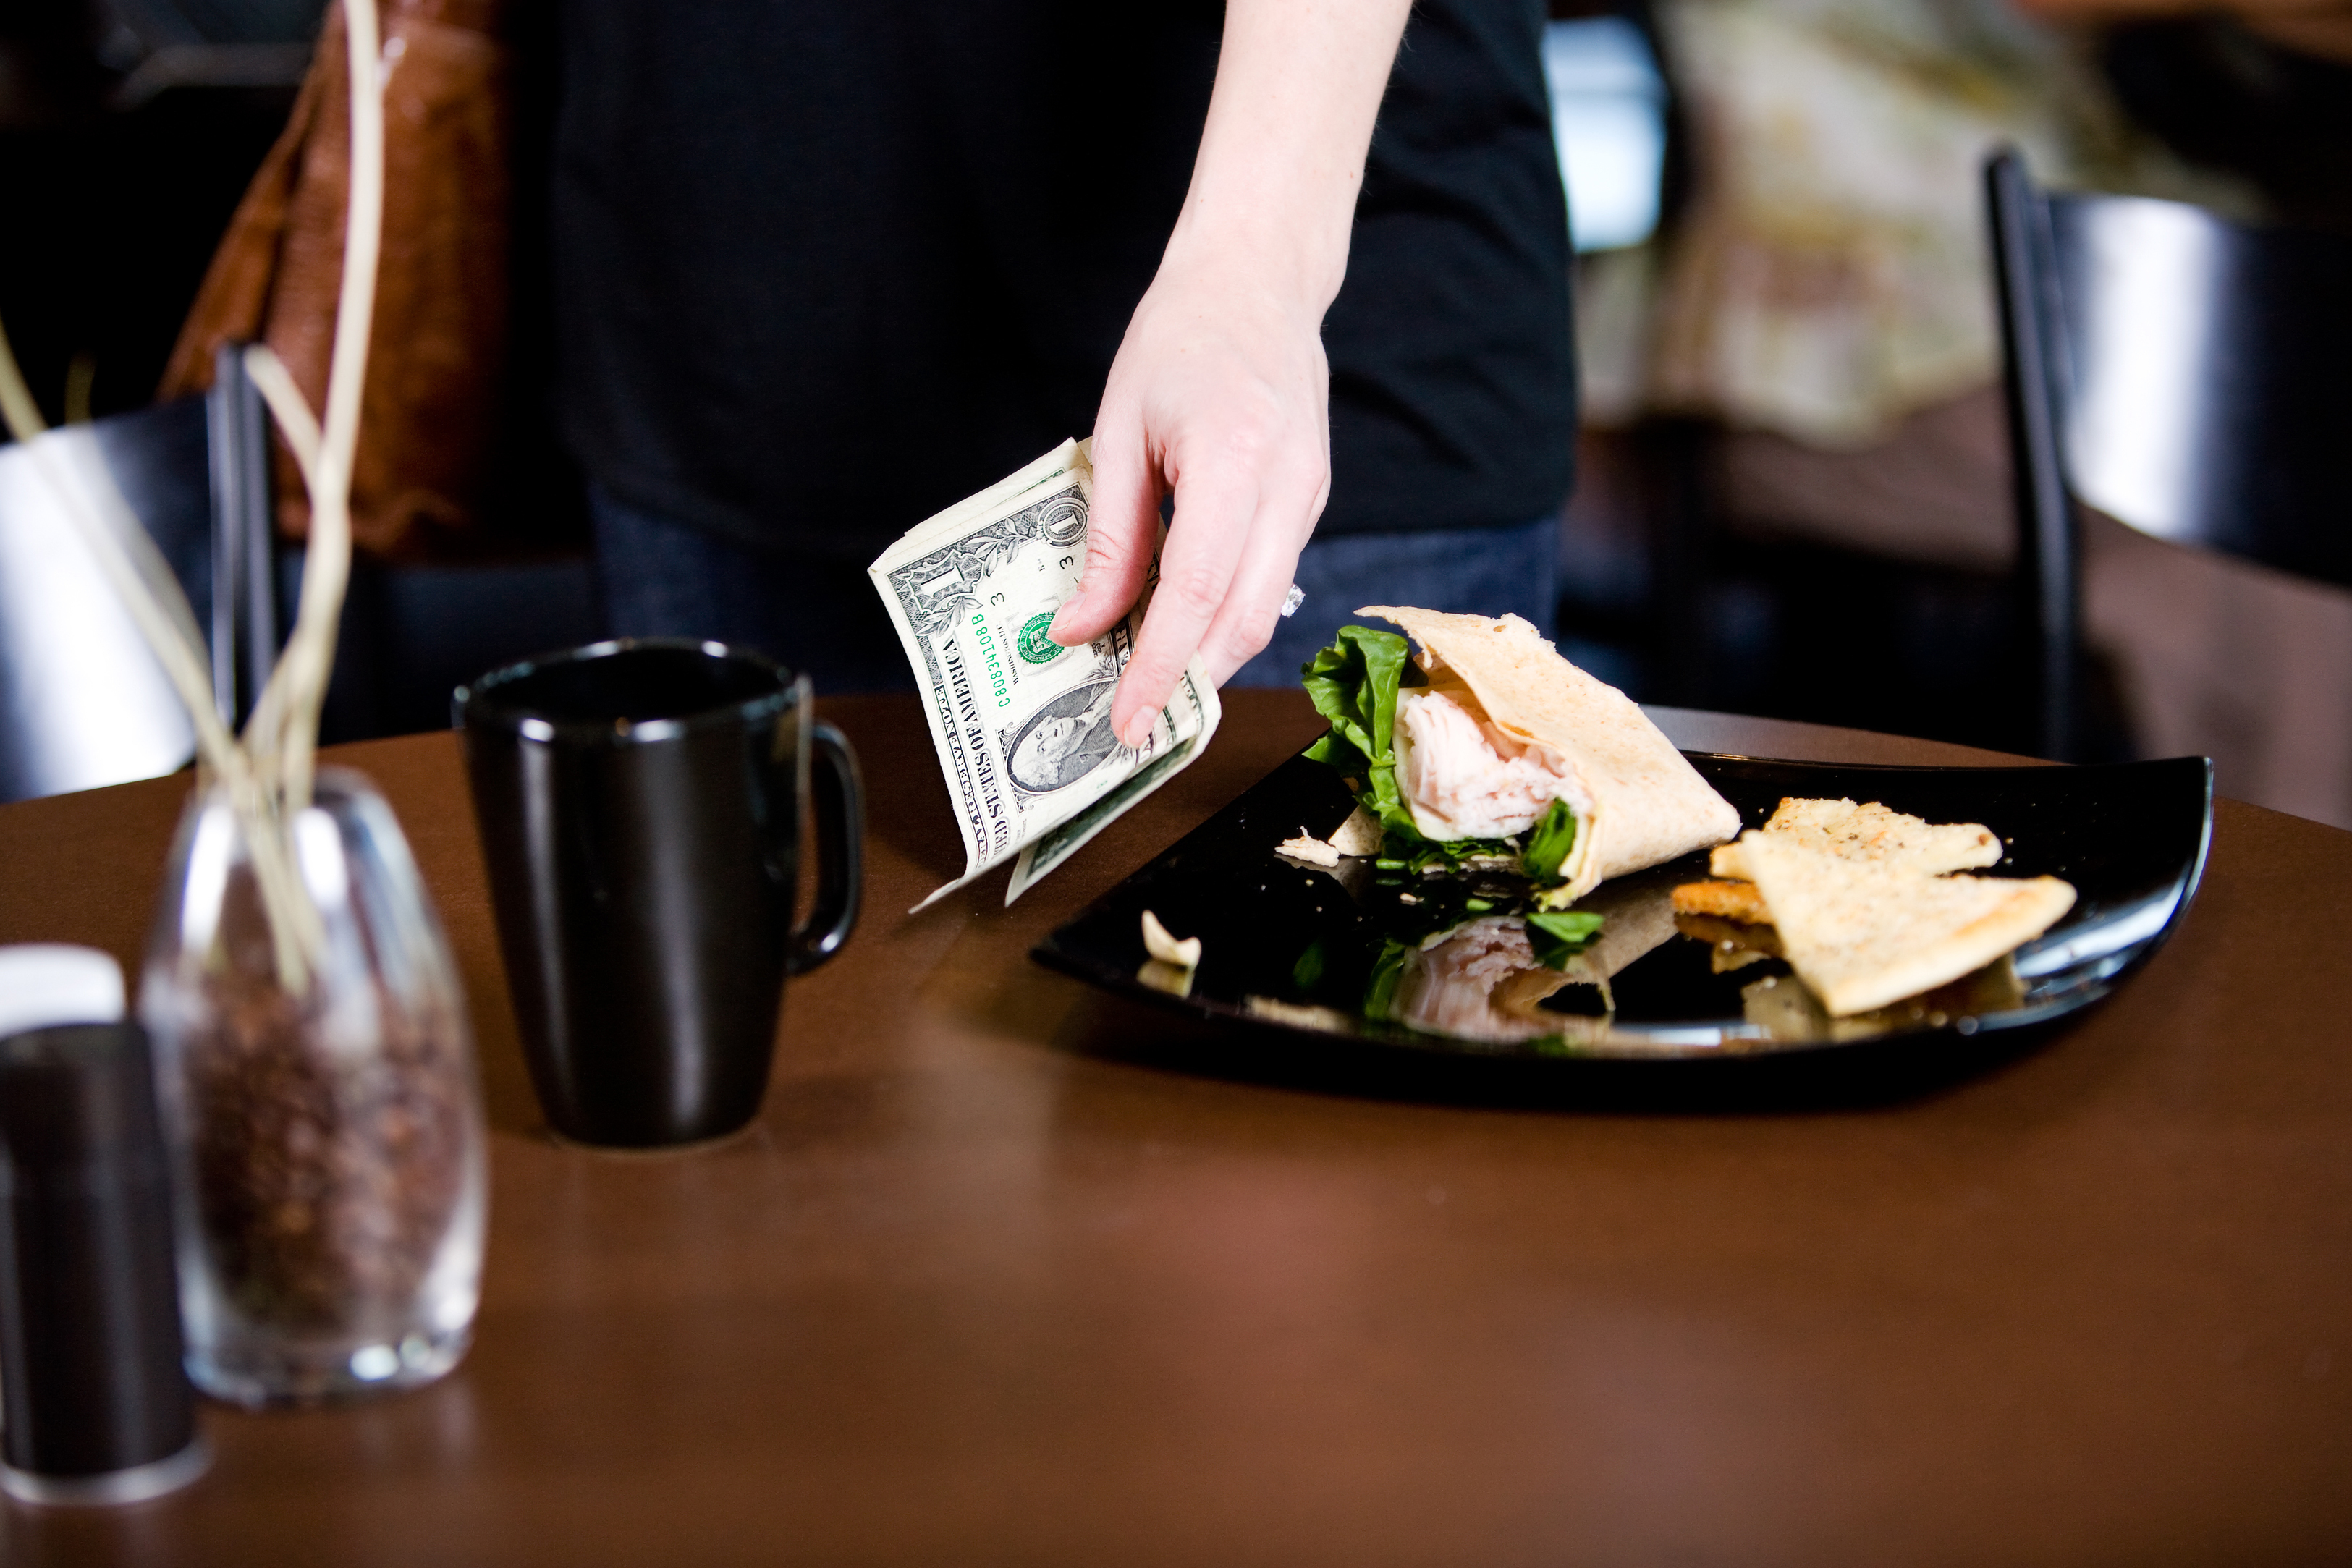 Michigan Supreme Court May Decide Whether Methods to Alter Minimum Wage Law Were Constitutional